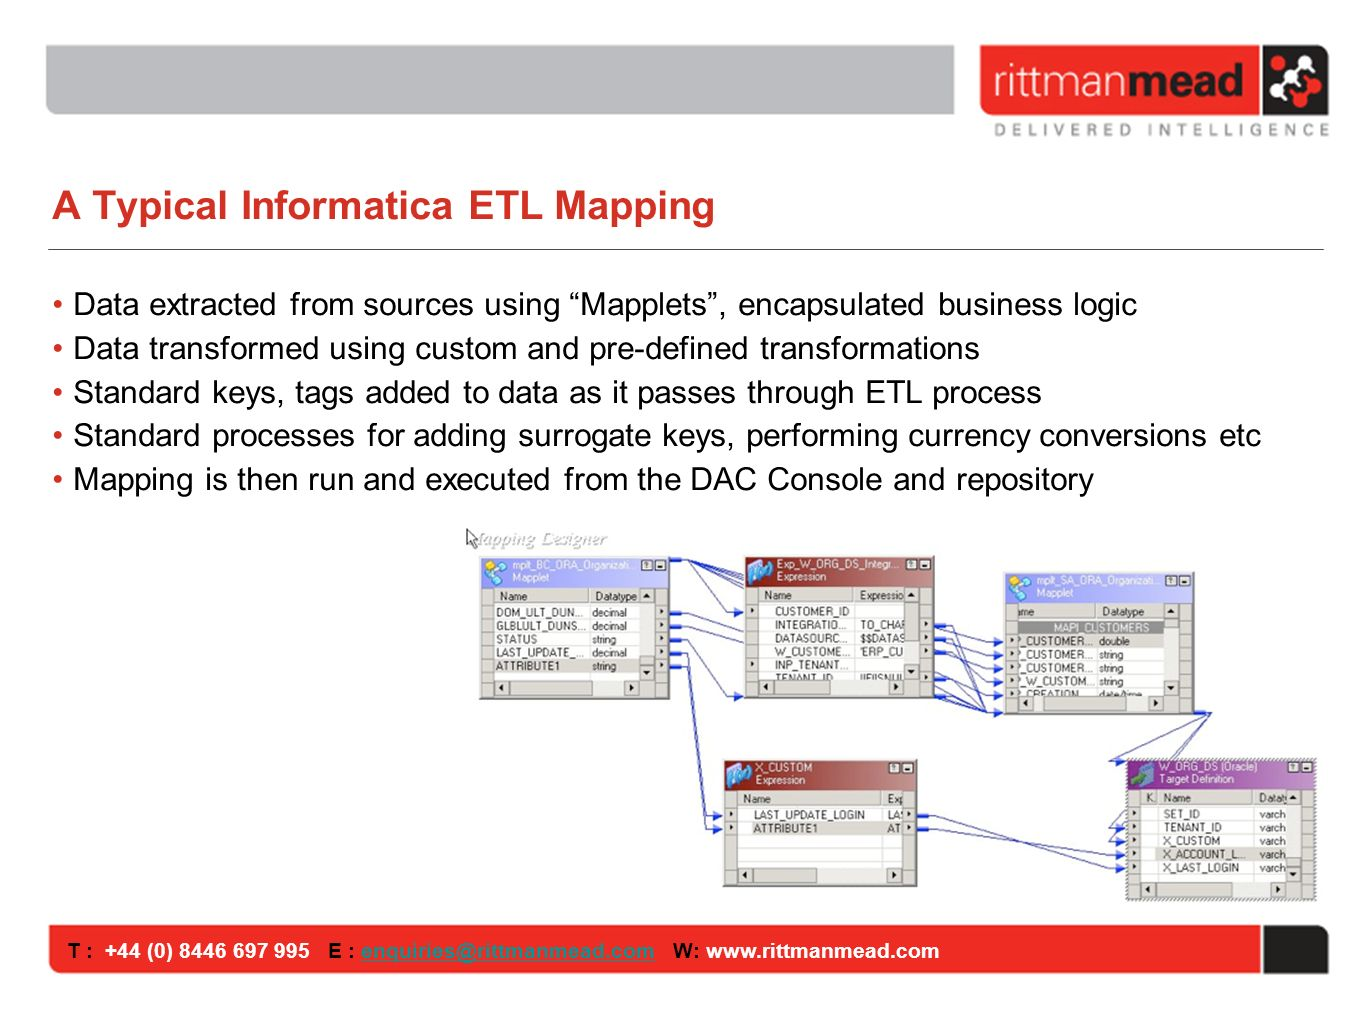 T : +44 (0) E : W: A Typical Informatica ETL Mapping Data extracted from sources using Mapplets, encapsulated business logic Data transformed using custom and pre-defined transformations Standard keys, tags added to data as it passes through ETL process Standard processes for adding surrogate keys, performing currency conversions etc Mapping is then run and executed from the DAC Console and repository